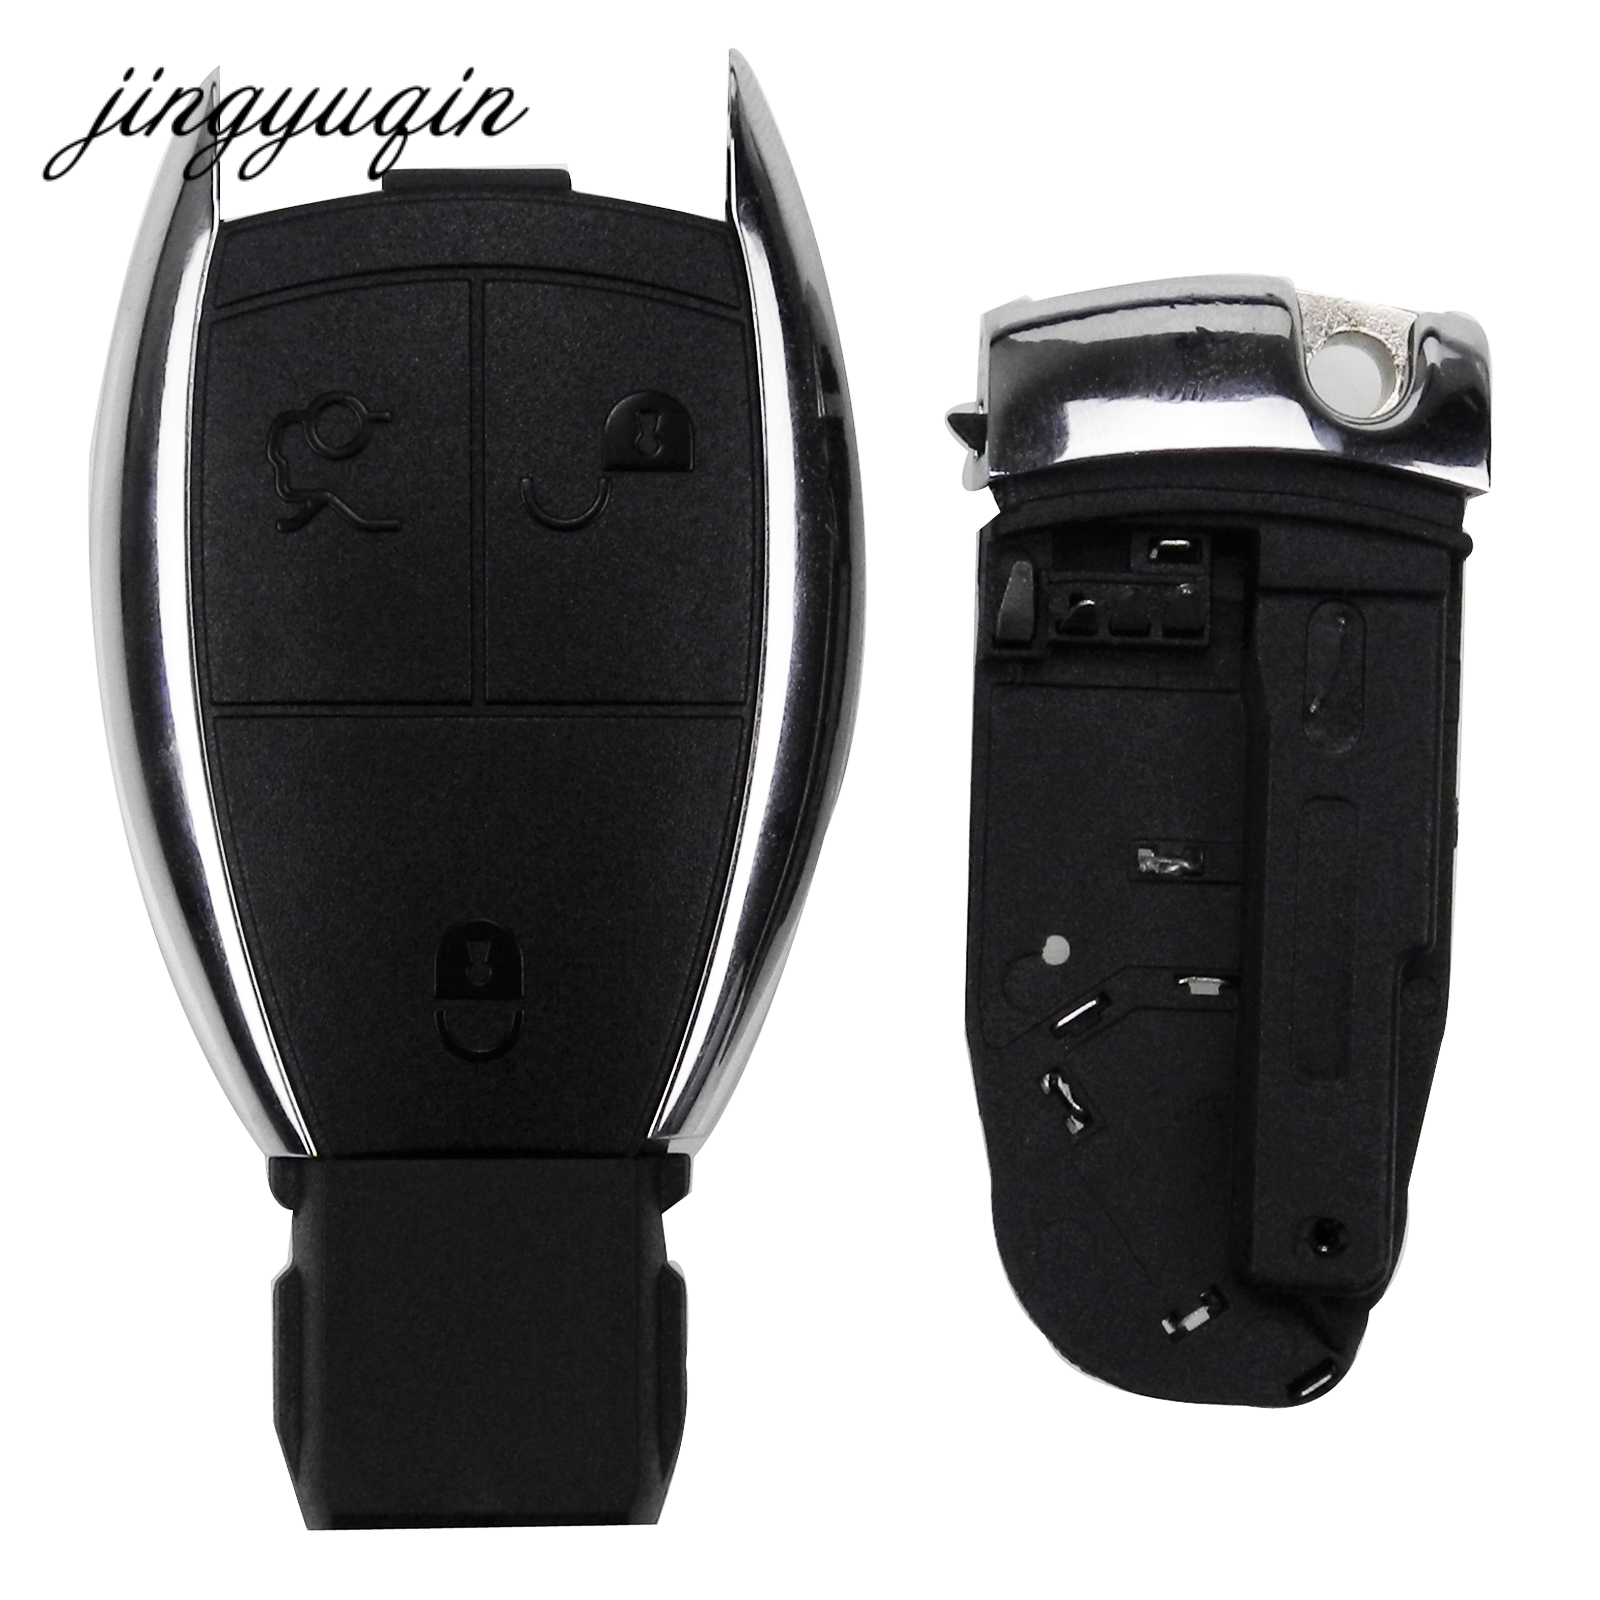 jingyuqin for MERCEDES 3 Button Remote Car Key Case Fob Shell for BENZ C E R S CL GL SL CLK SLK W203 fob + Battery Holder Clamp